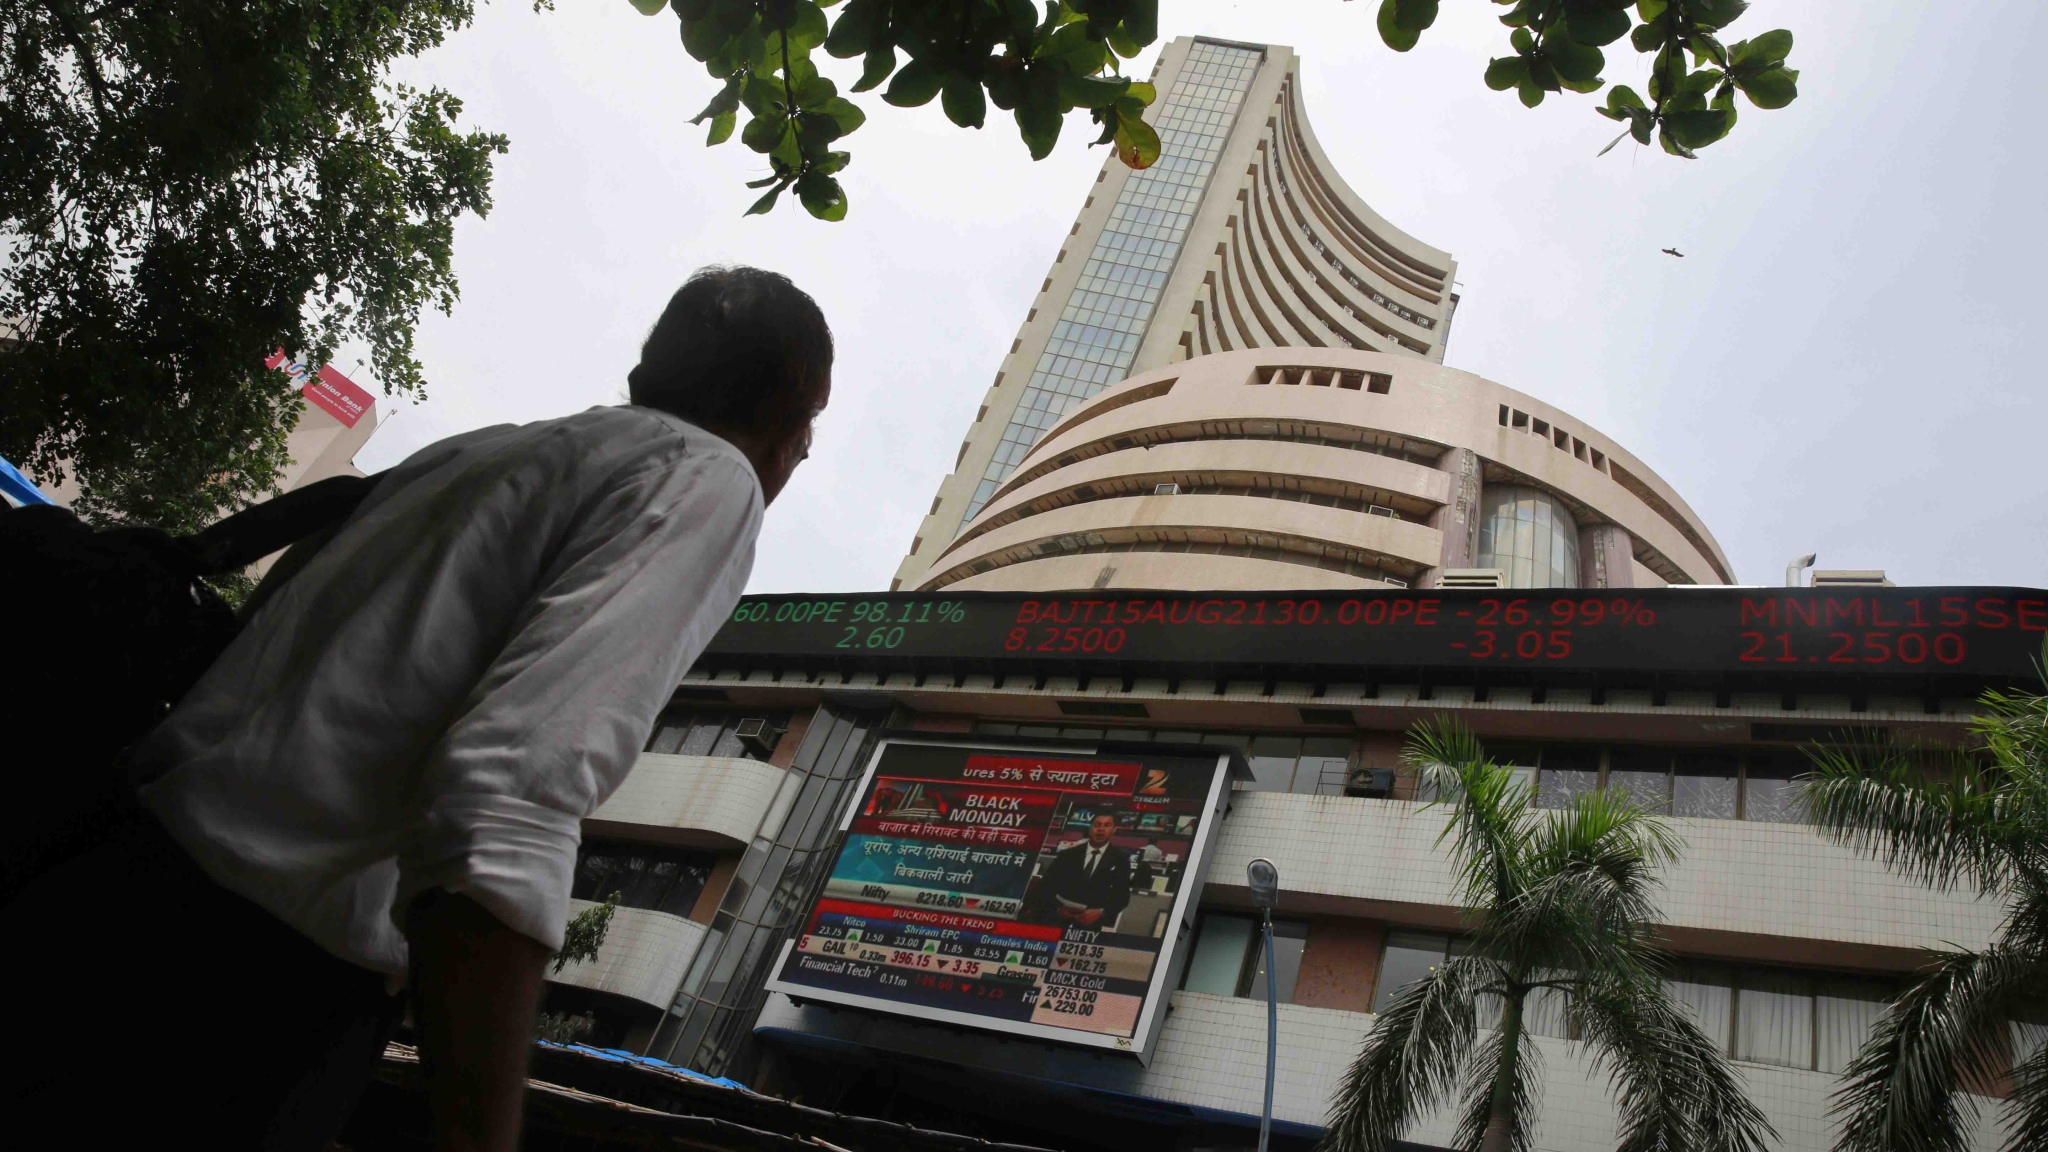 SEBI, Stock Exchanges Beef Up Surveillance Before Poll Results